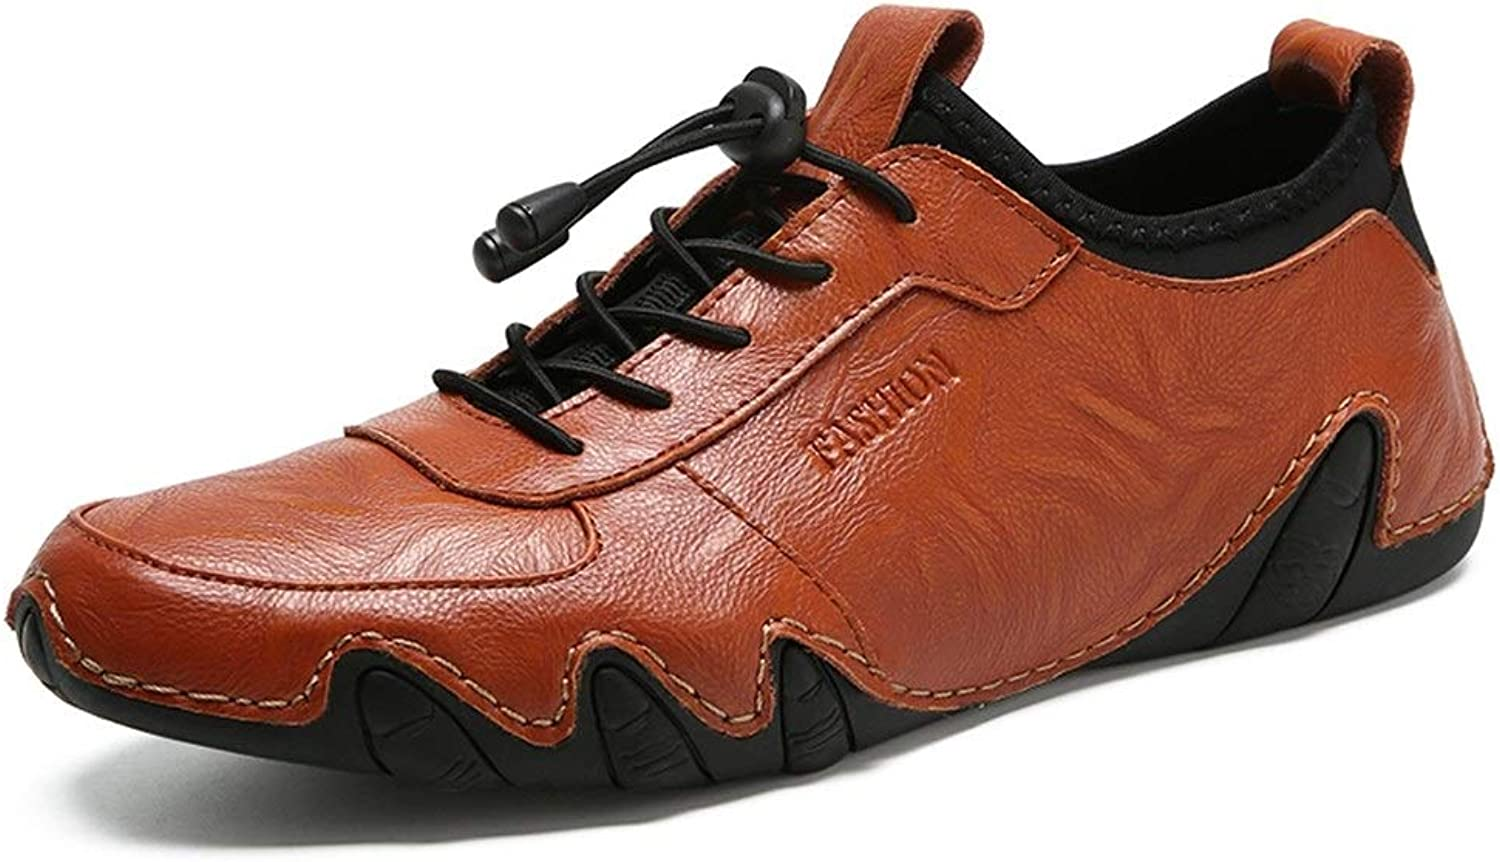 Fashion Sneakers for Men Walking shoes with Elastic Lock shoeslaces Casual Slip On Round Toe Leather Upper Anti-Slip Lightweight Cricket shoes (color   Reddish Brown, Size   8 UK)